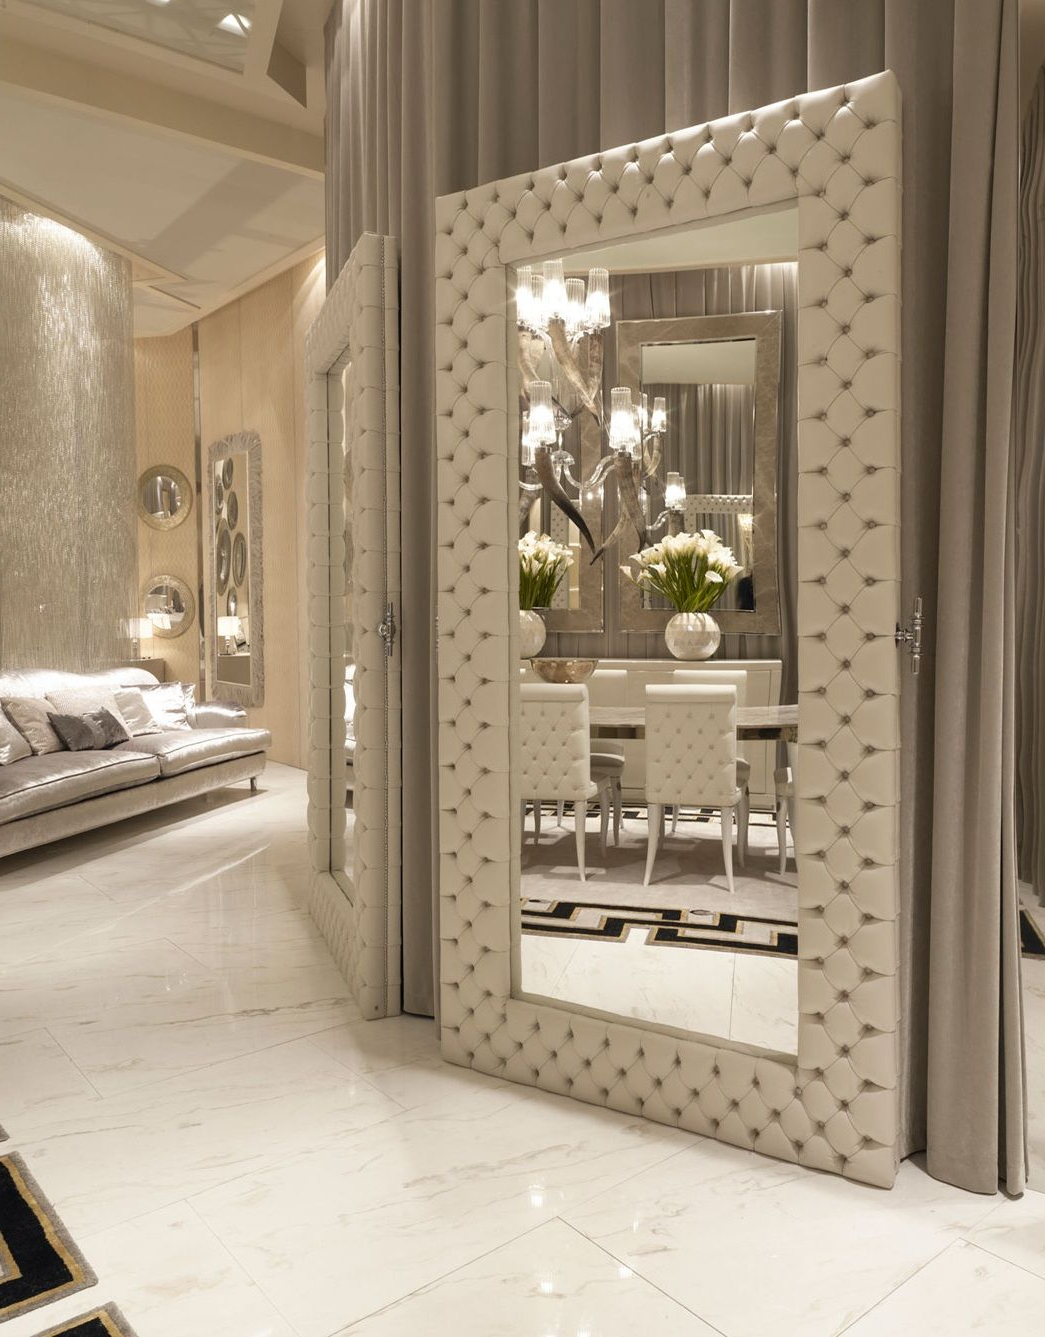 Instyle Decor Wall Mirrors, Luxury Designer Wall Mirrors, Modern Pertaining To Newest Expensive Wall Mirrors (View 2 of 20)